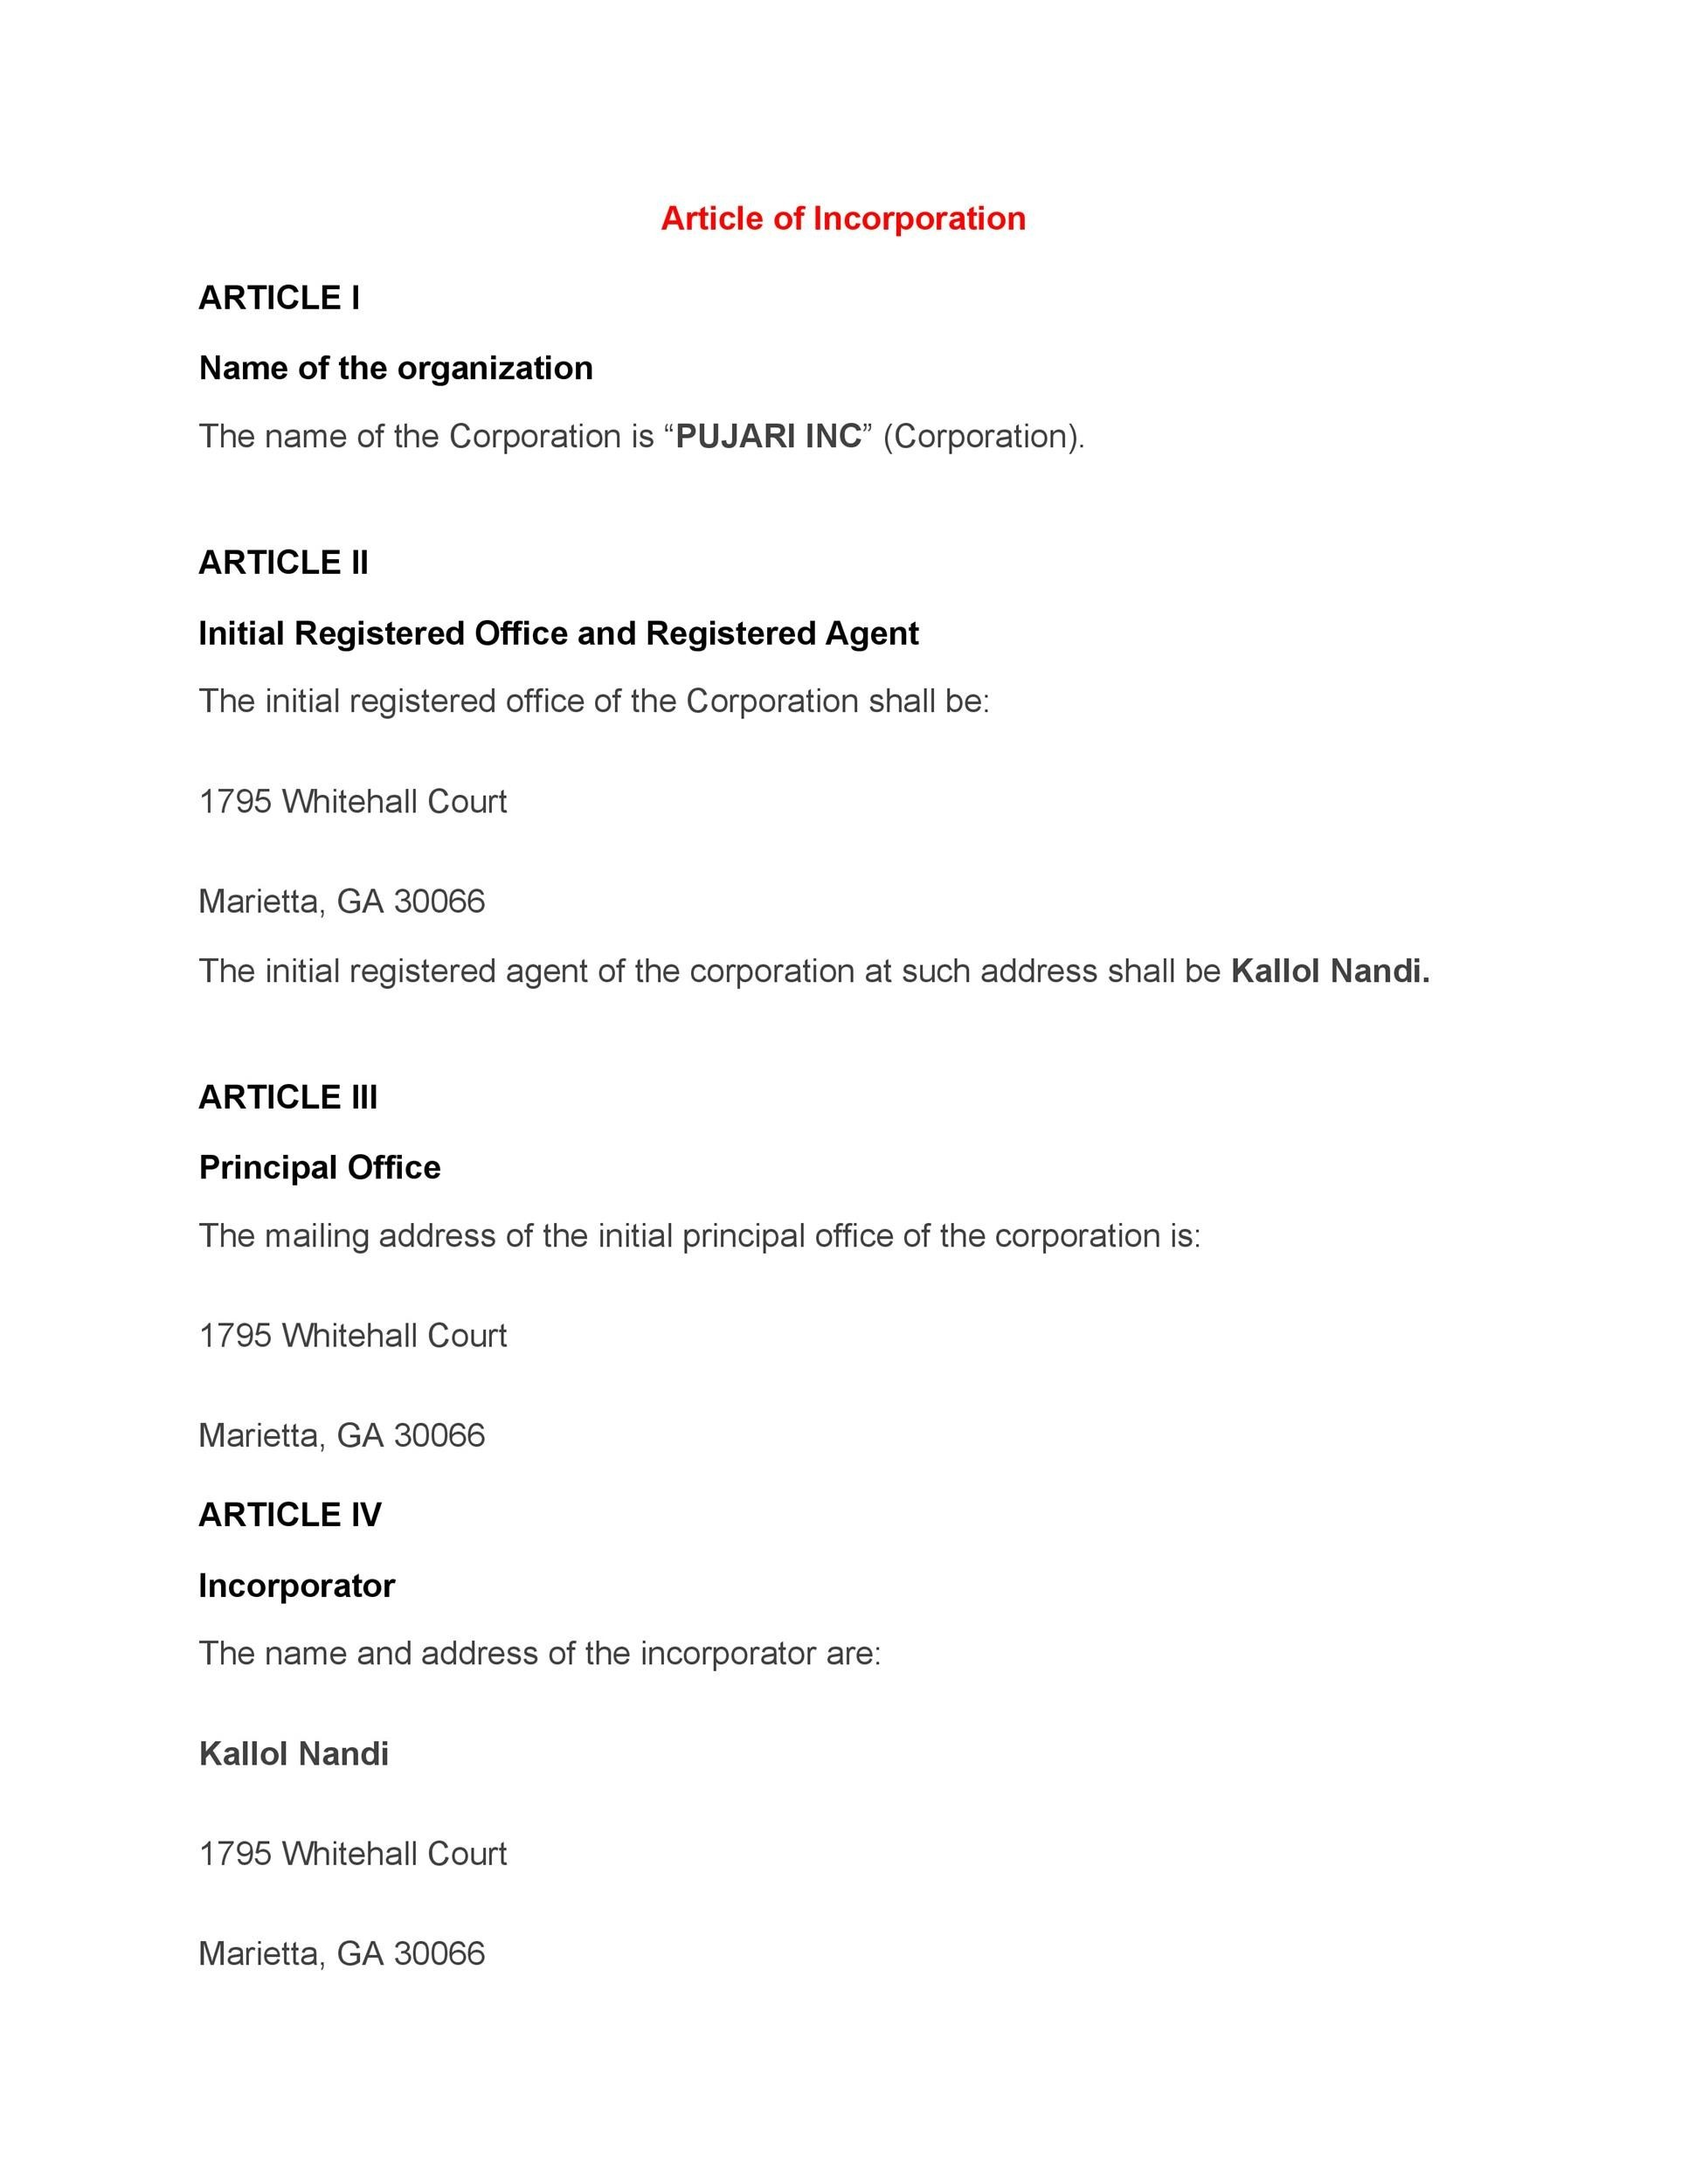 Free articles of incorporation template 14